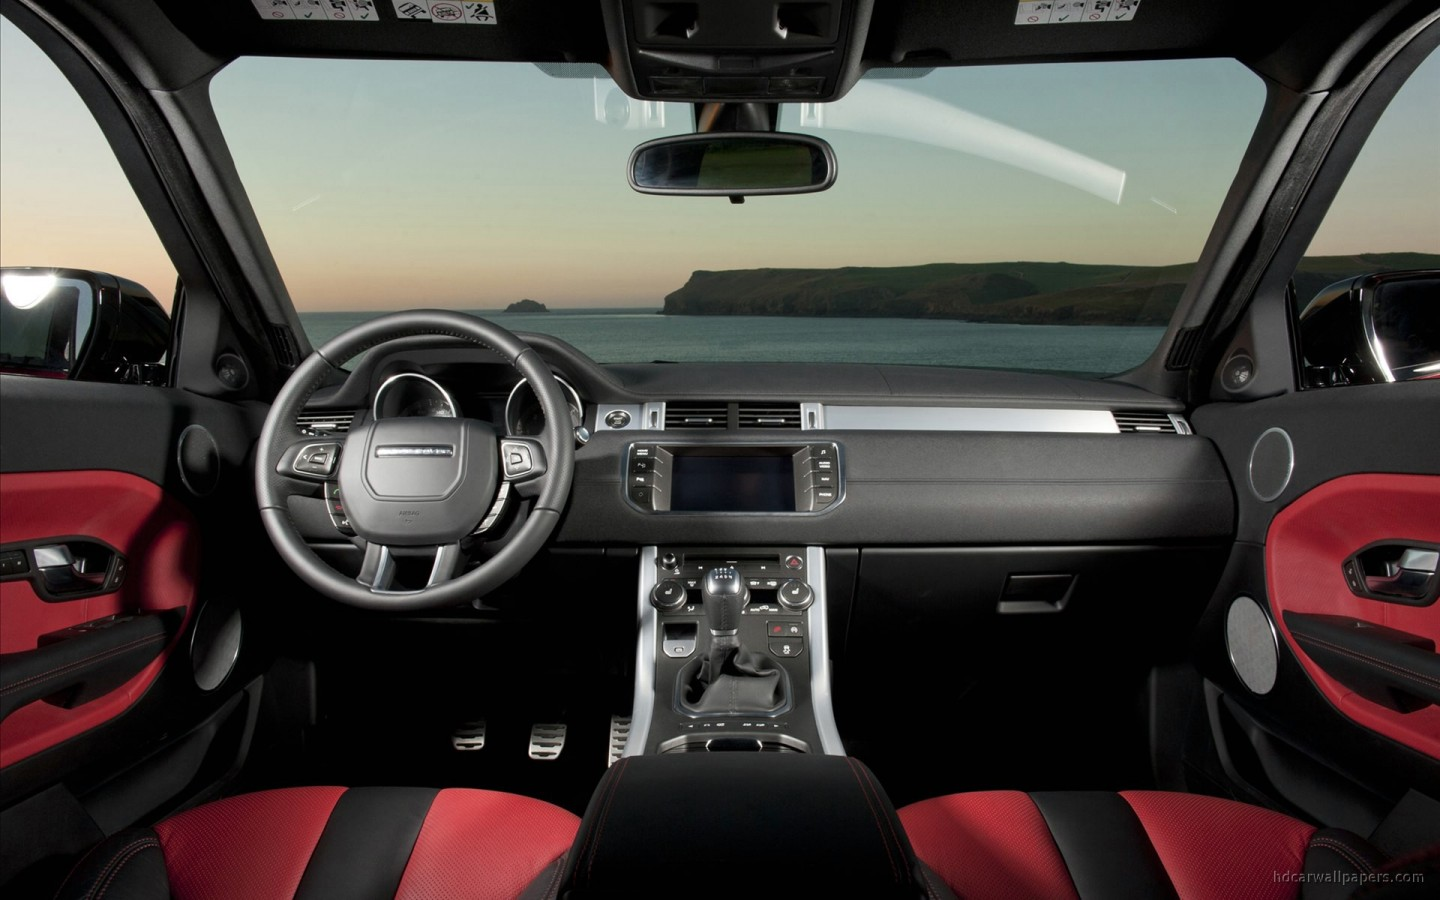 range rover evoque 5 door interior wallpaper hd car. Black Bedroom Furniture Sets. Home Design Ideas